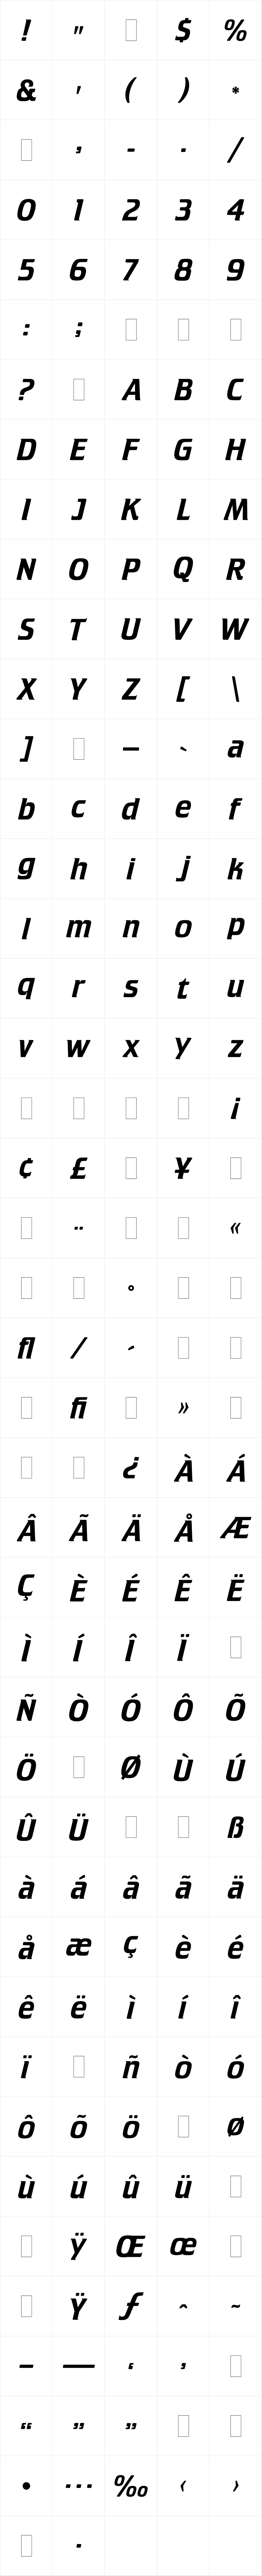 Crillee Italic LET